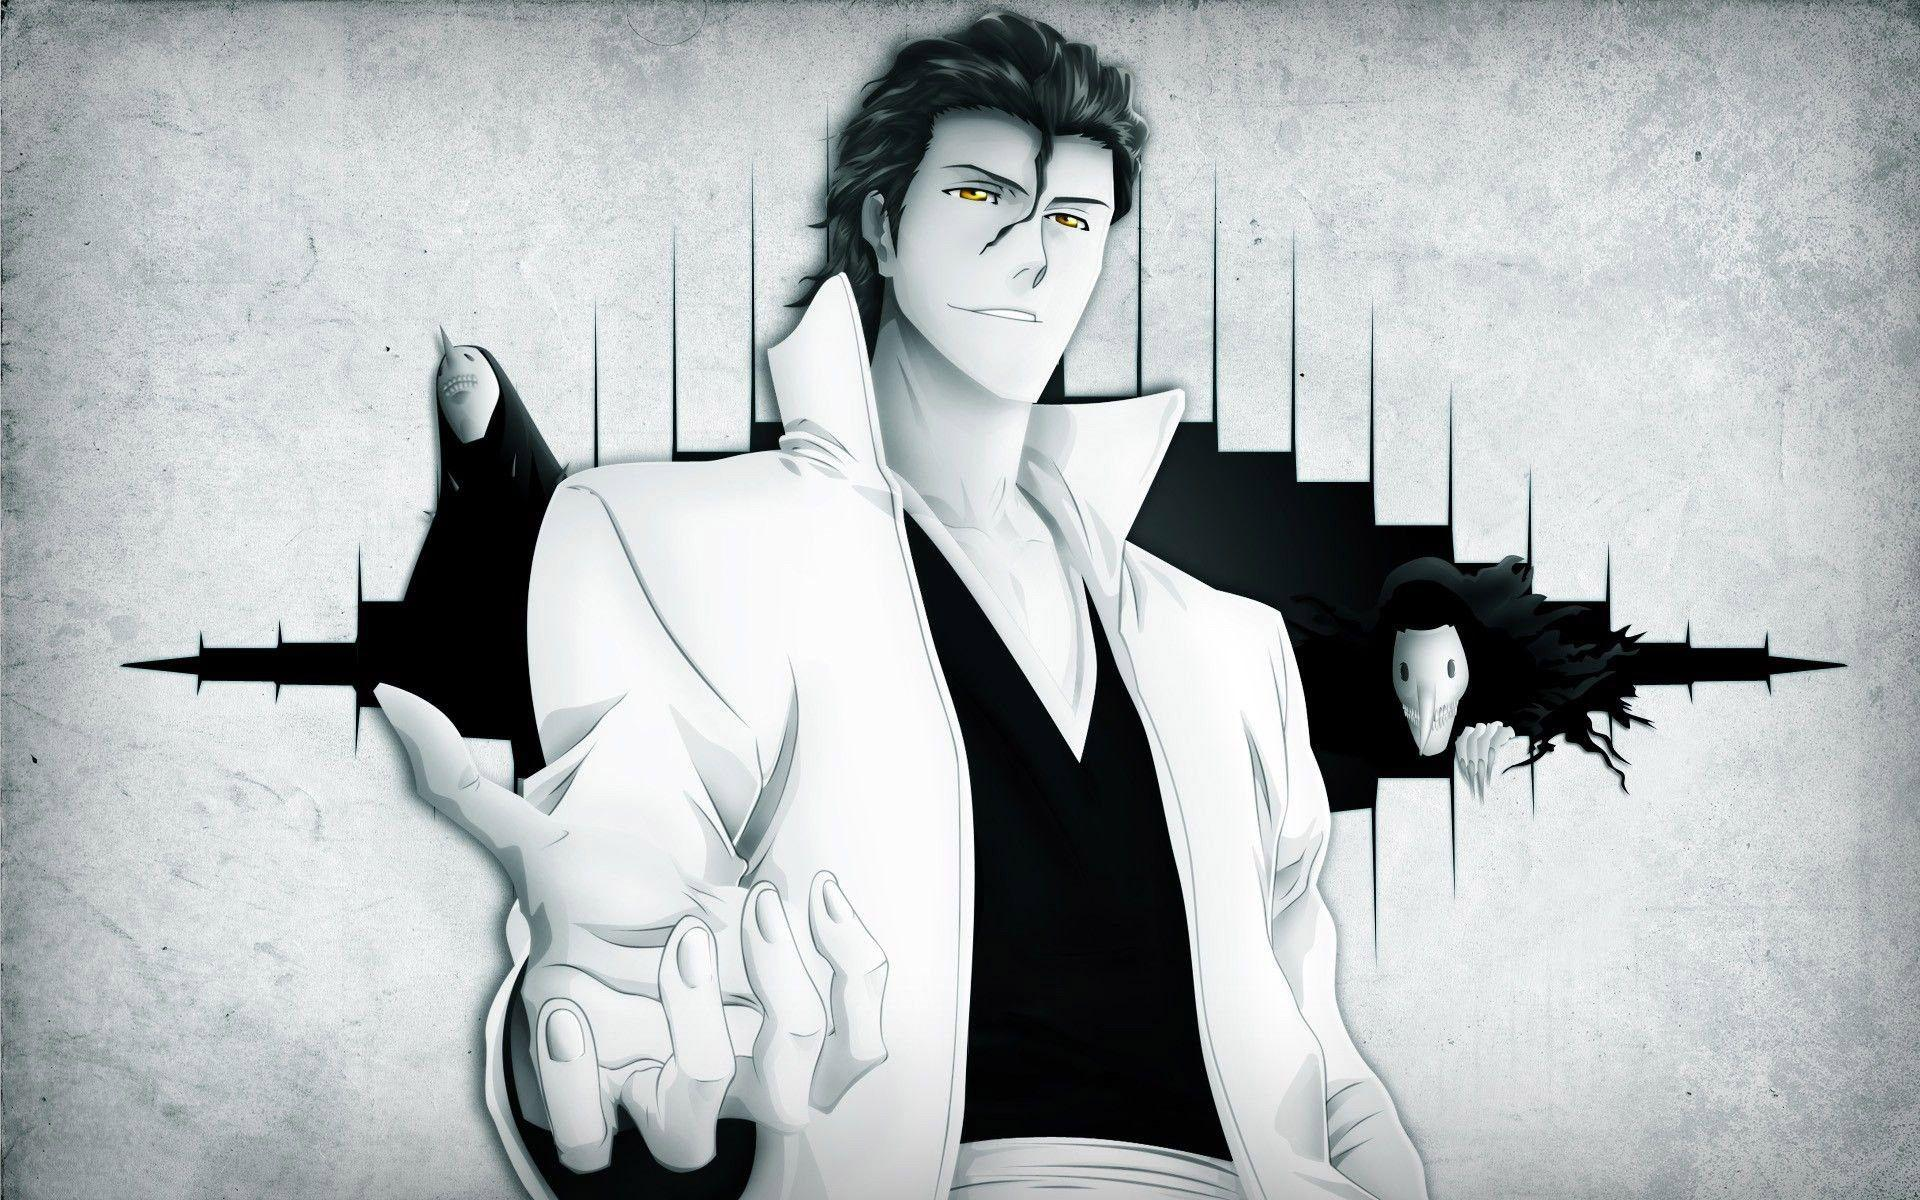 Bleach Aizen Wallpapers   Top Bleach Aizen Backgrounds 1920x1200